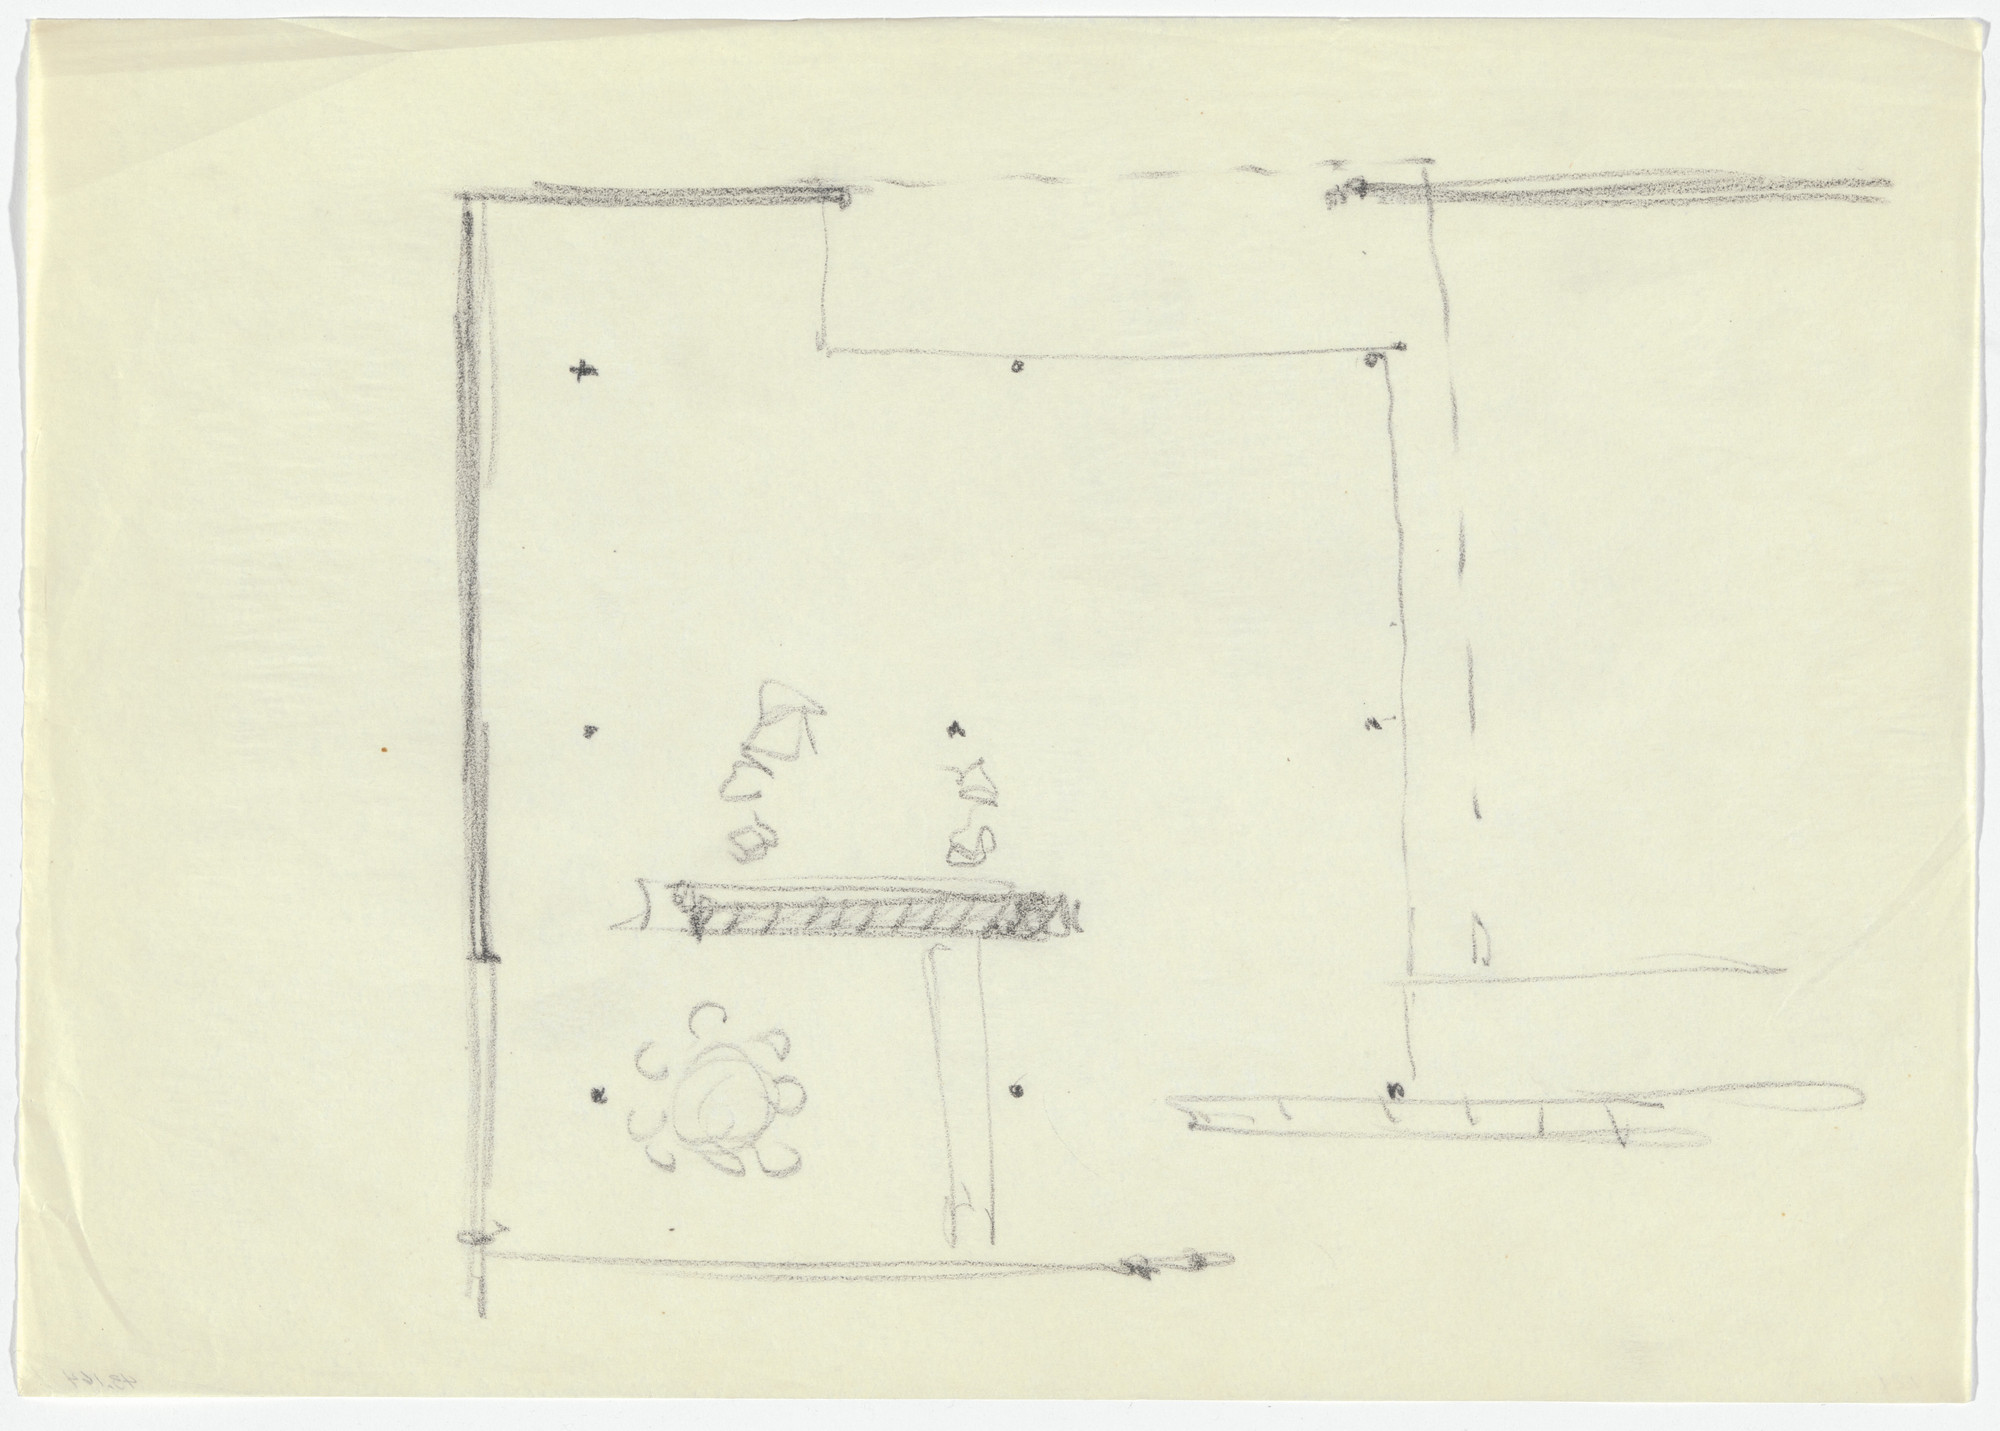 Ludwig Mies van der Rohe. Court House Project, Plan. c. 1935 | MoMA